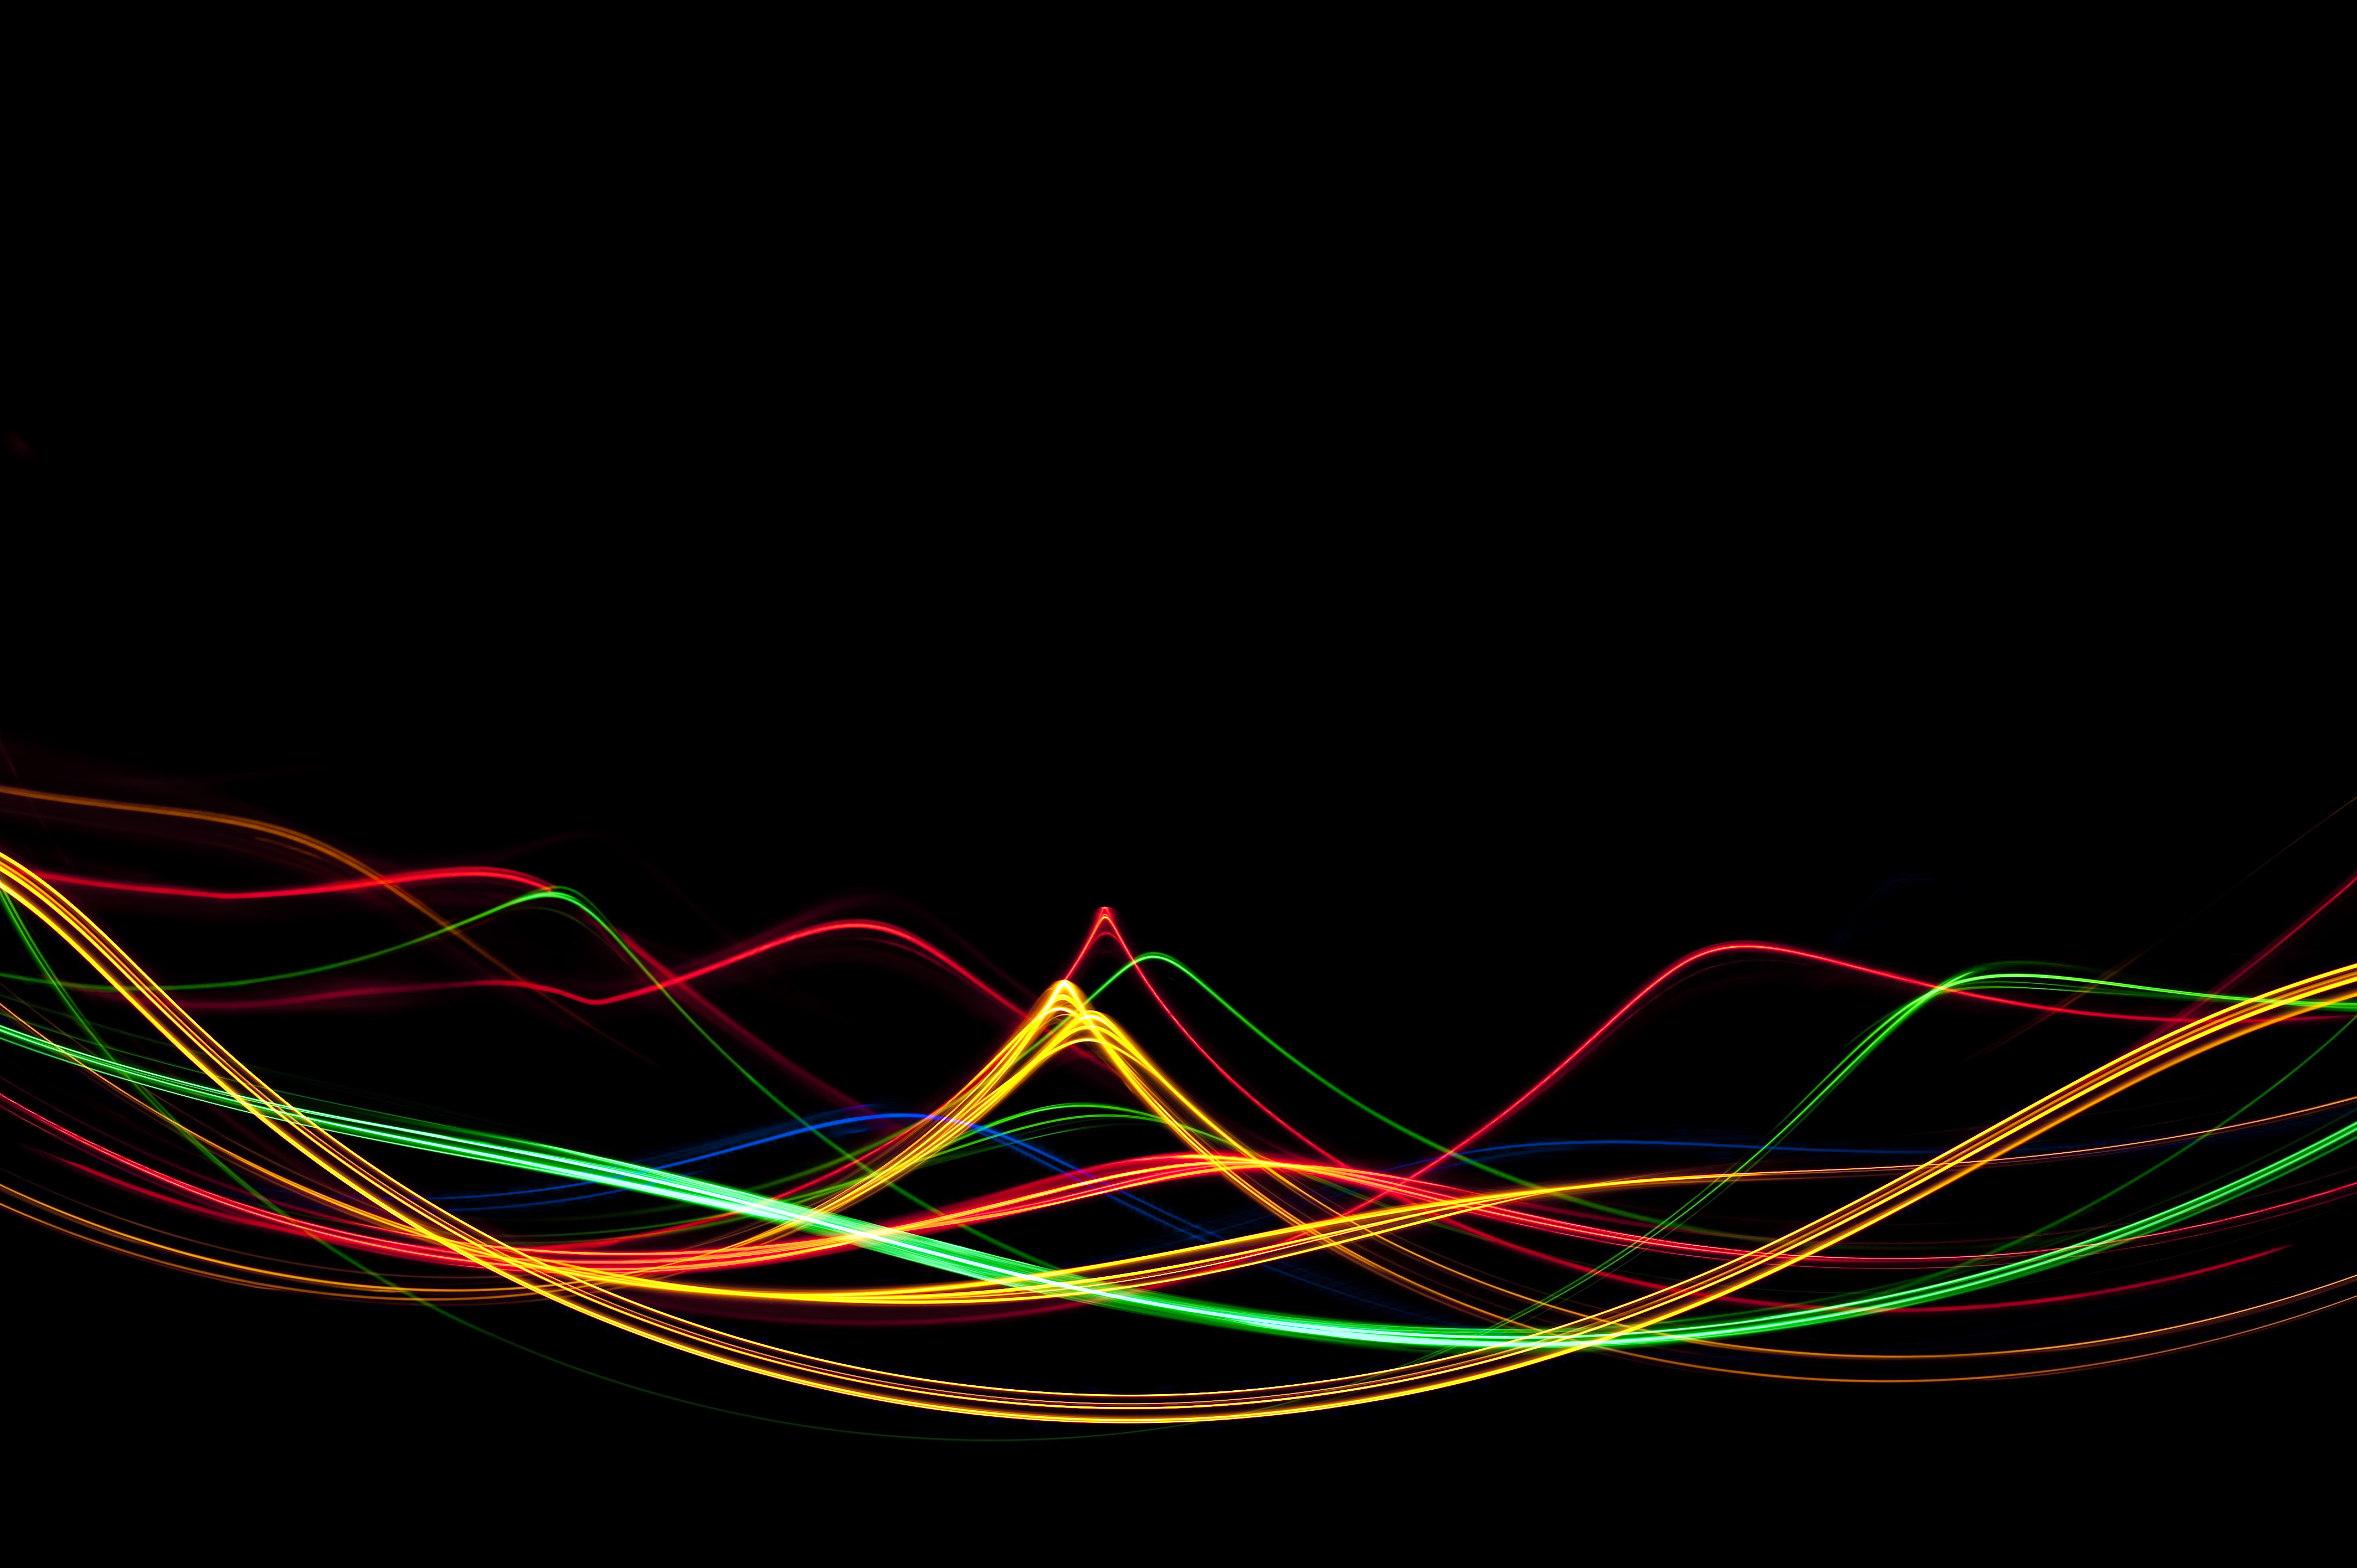 luminous light lines | Free backgrounds and textures | Cr103.com